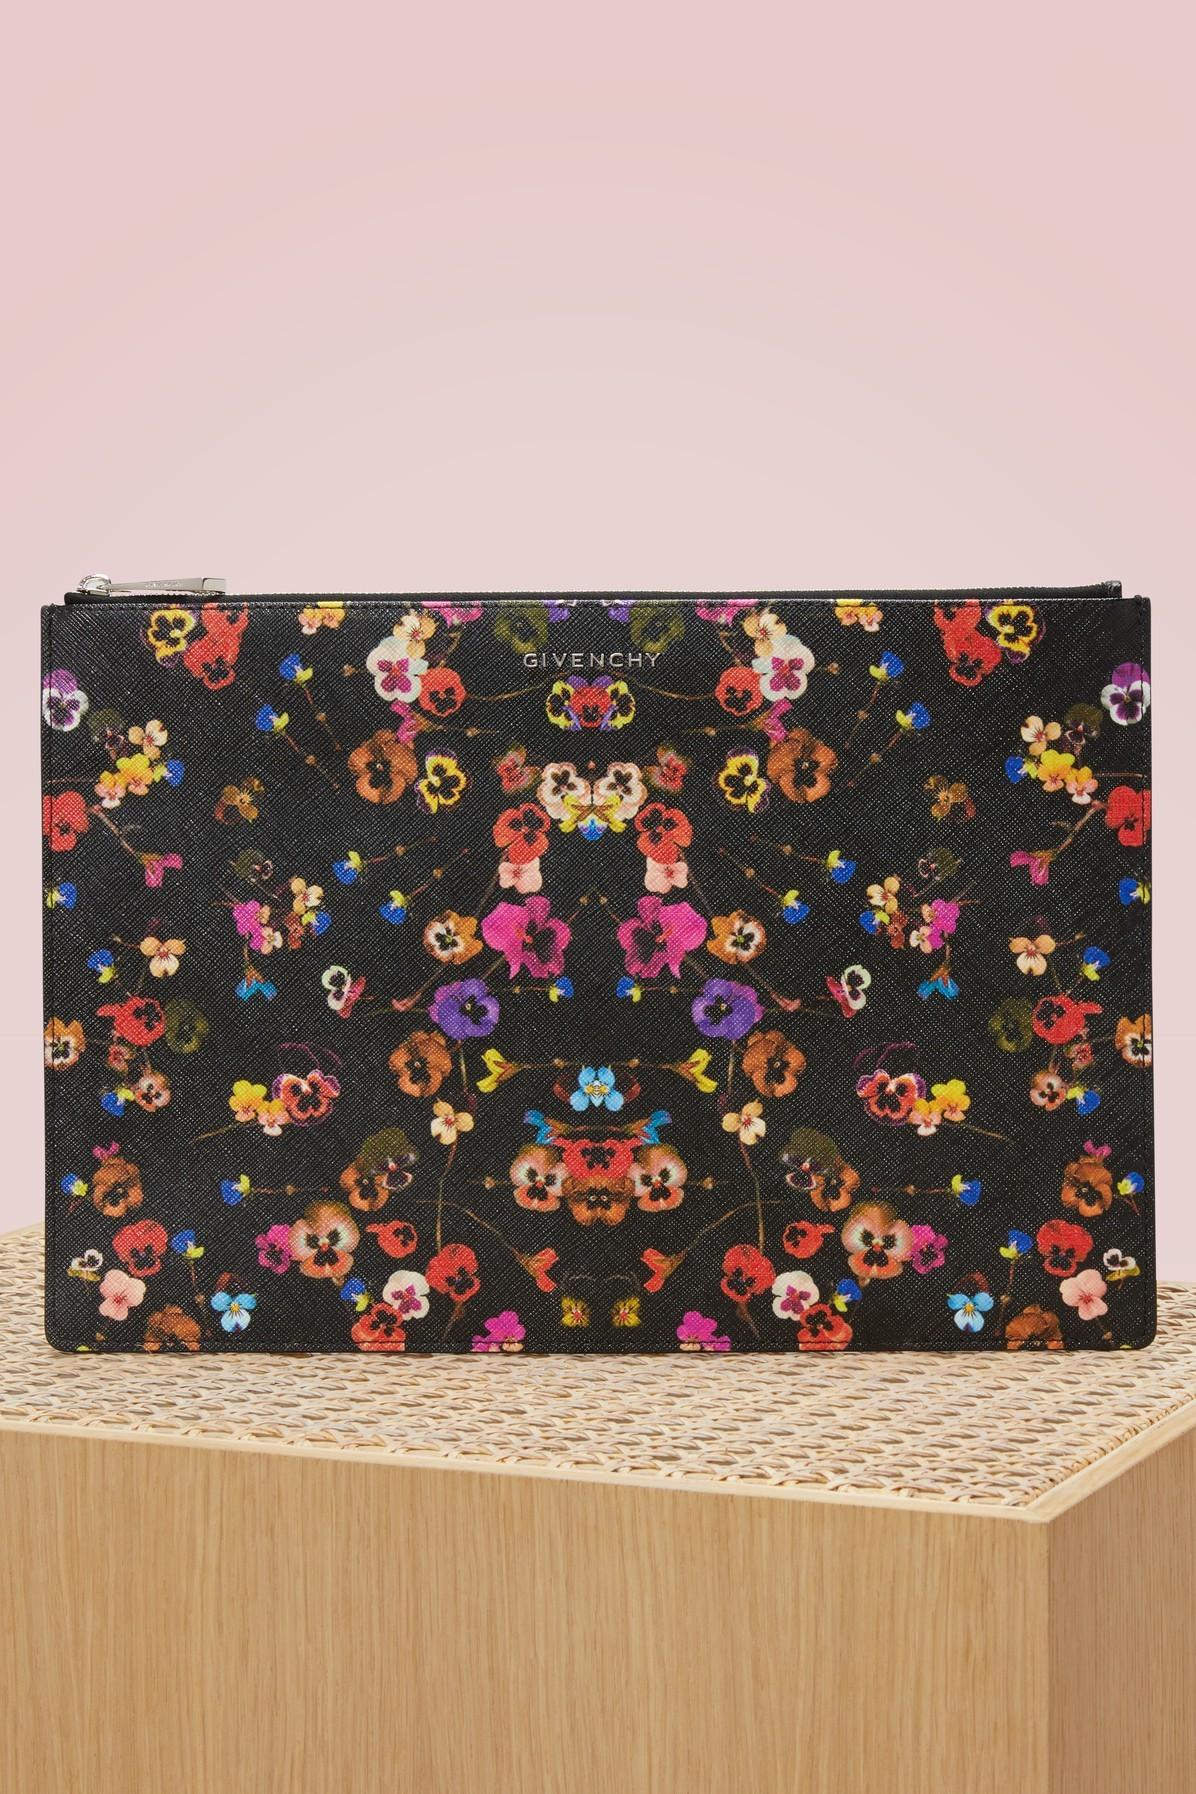 Givenchy Iconic Floral Print Clutch Multicolored Modesens